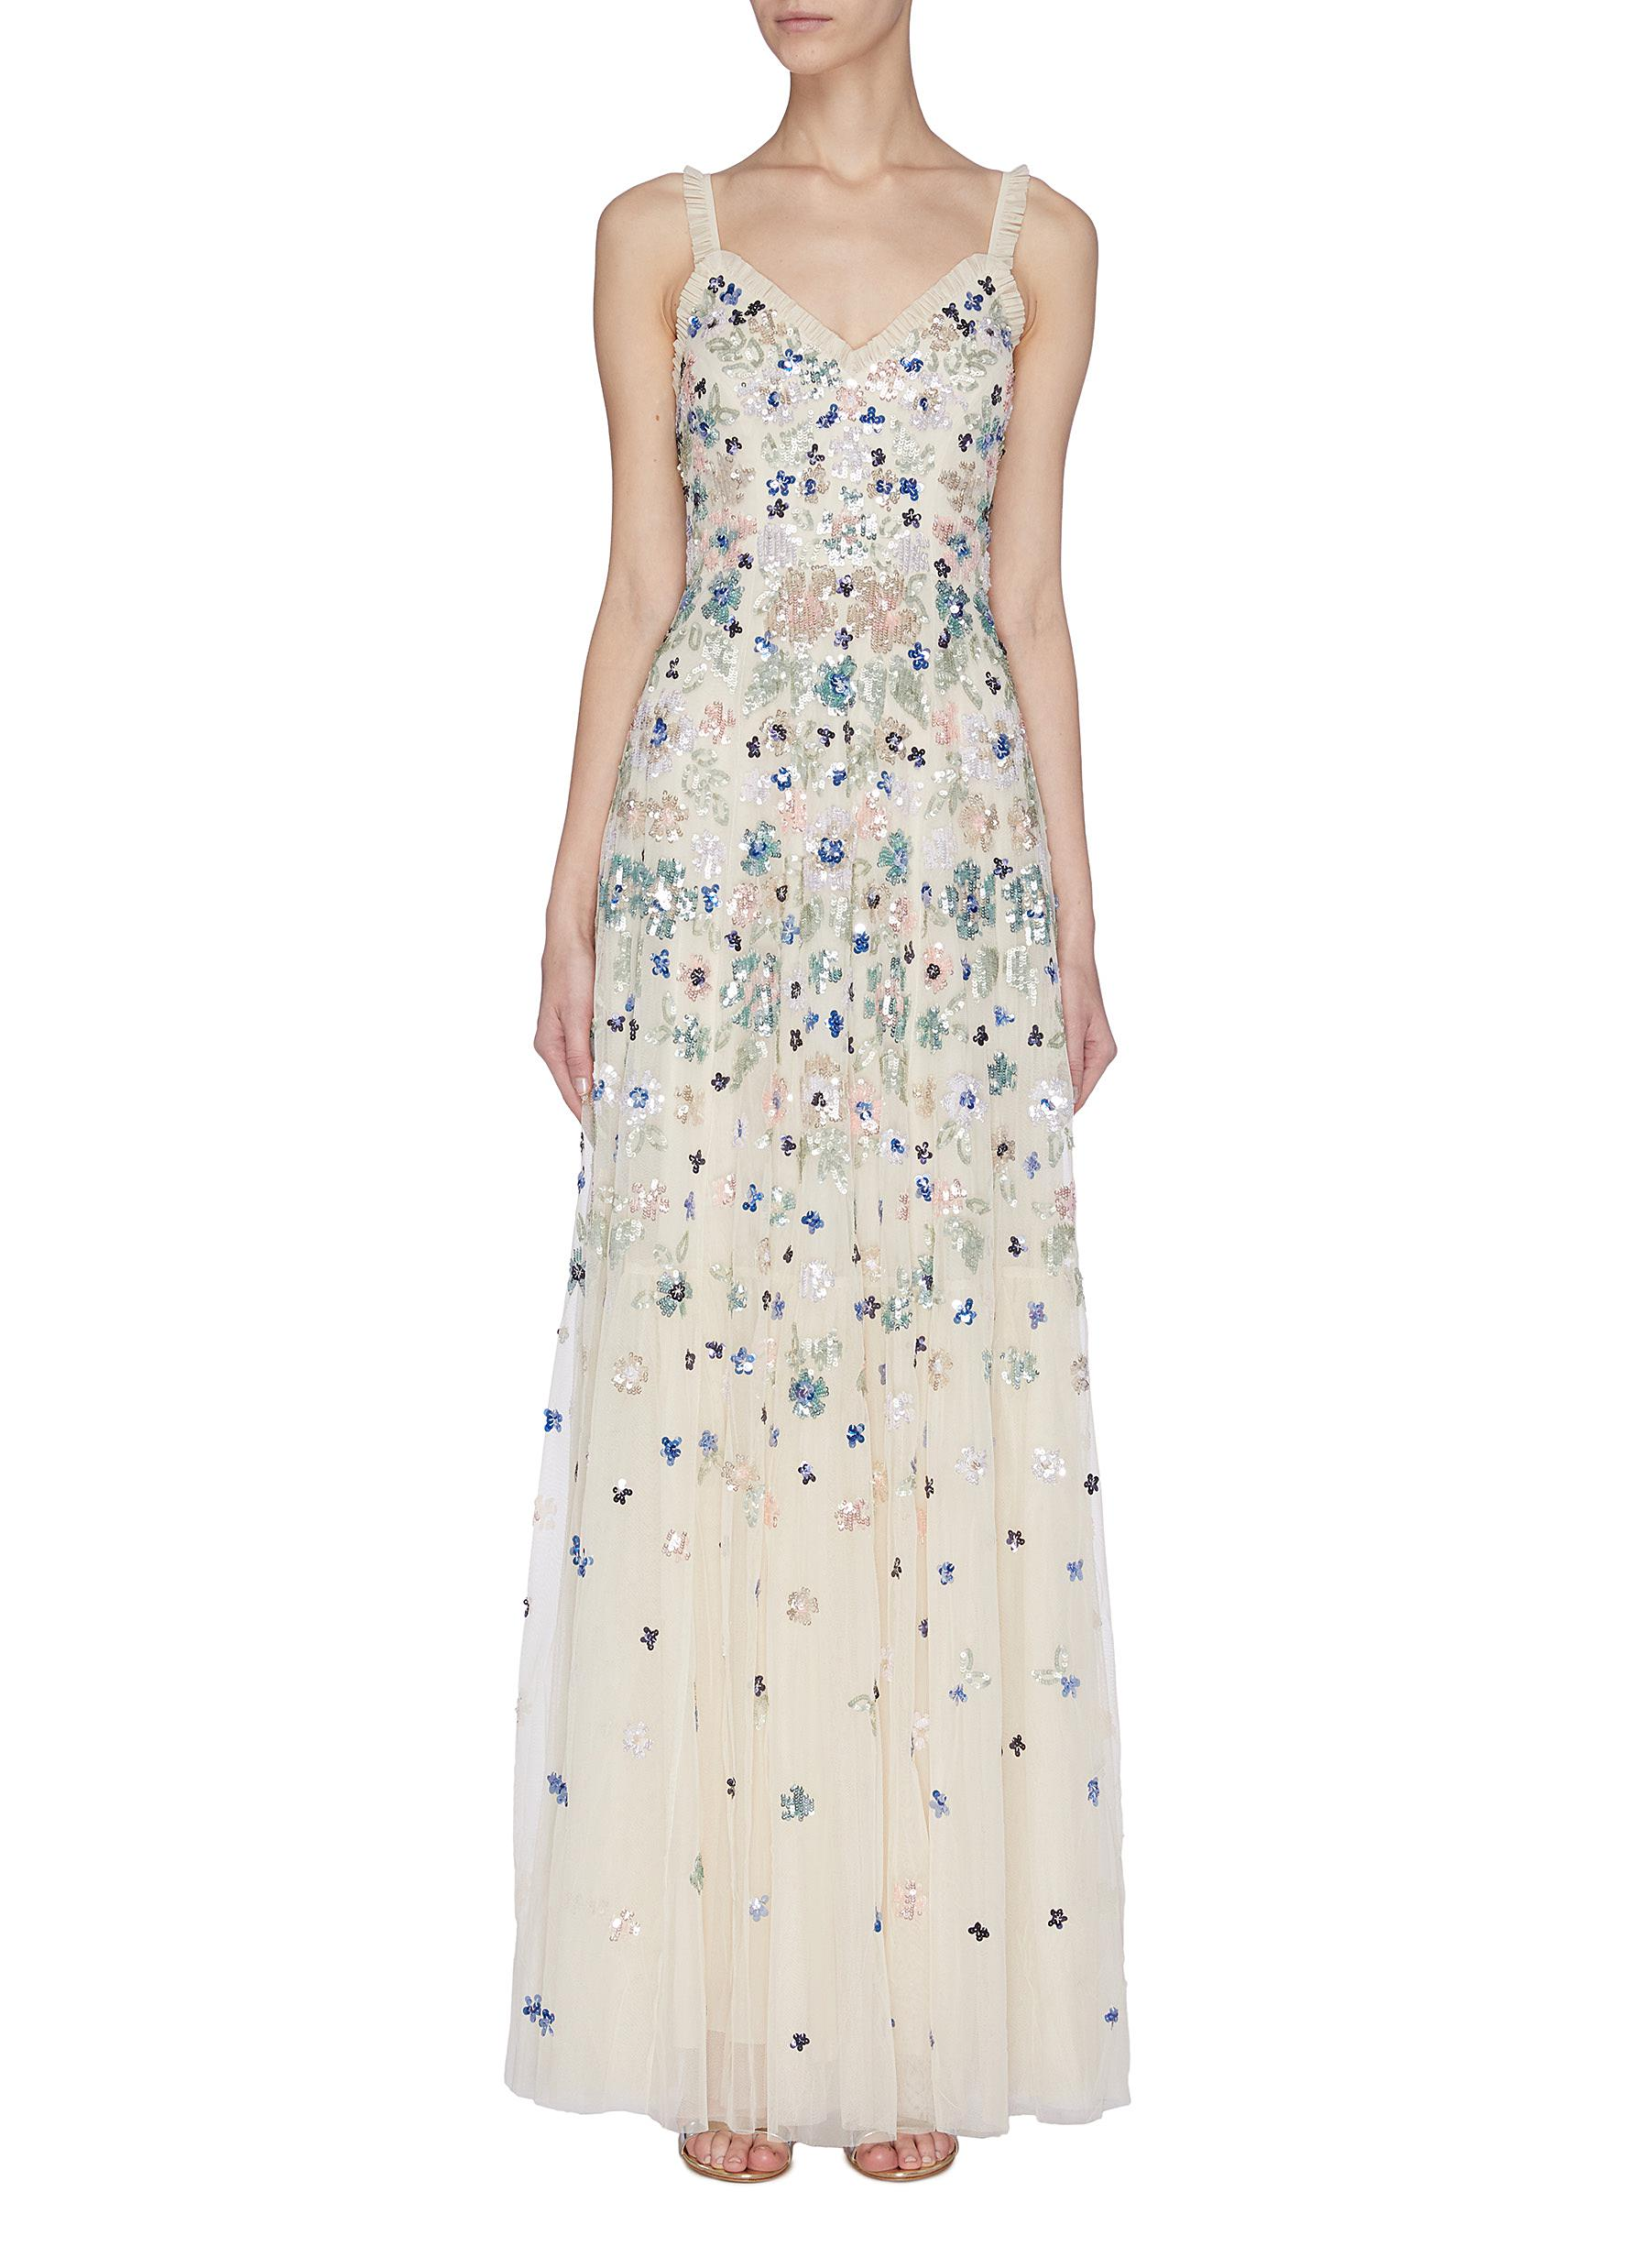 Buy Needle & Thread Dresses 'Wildflower' sequin embroidered gown